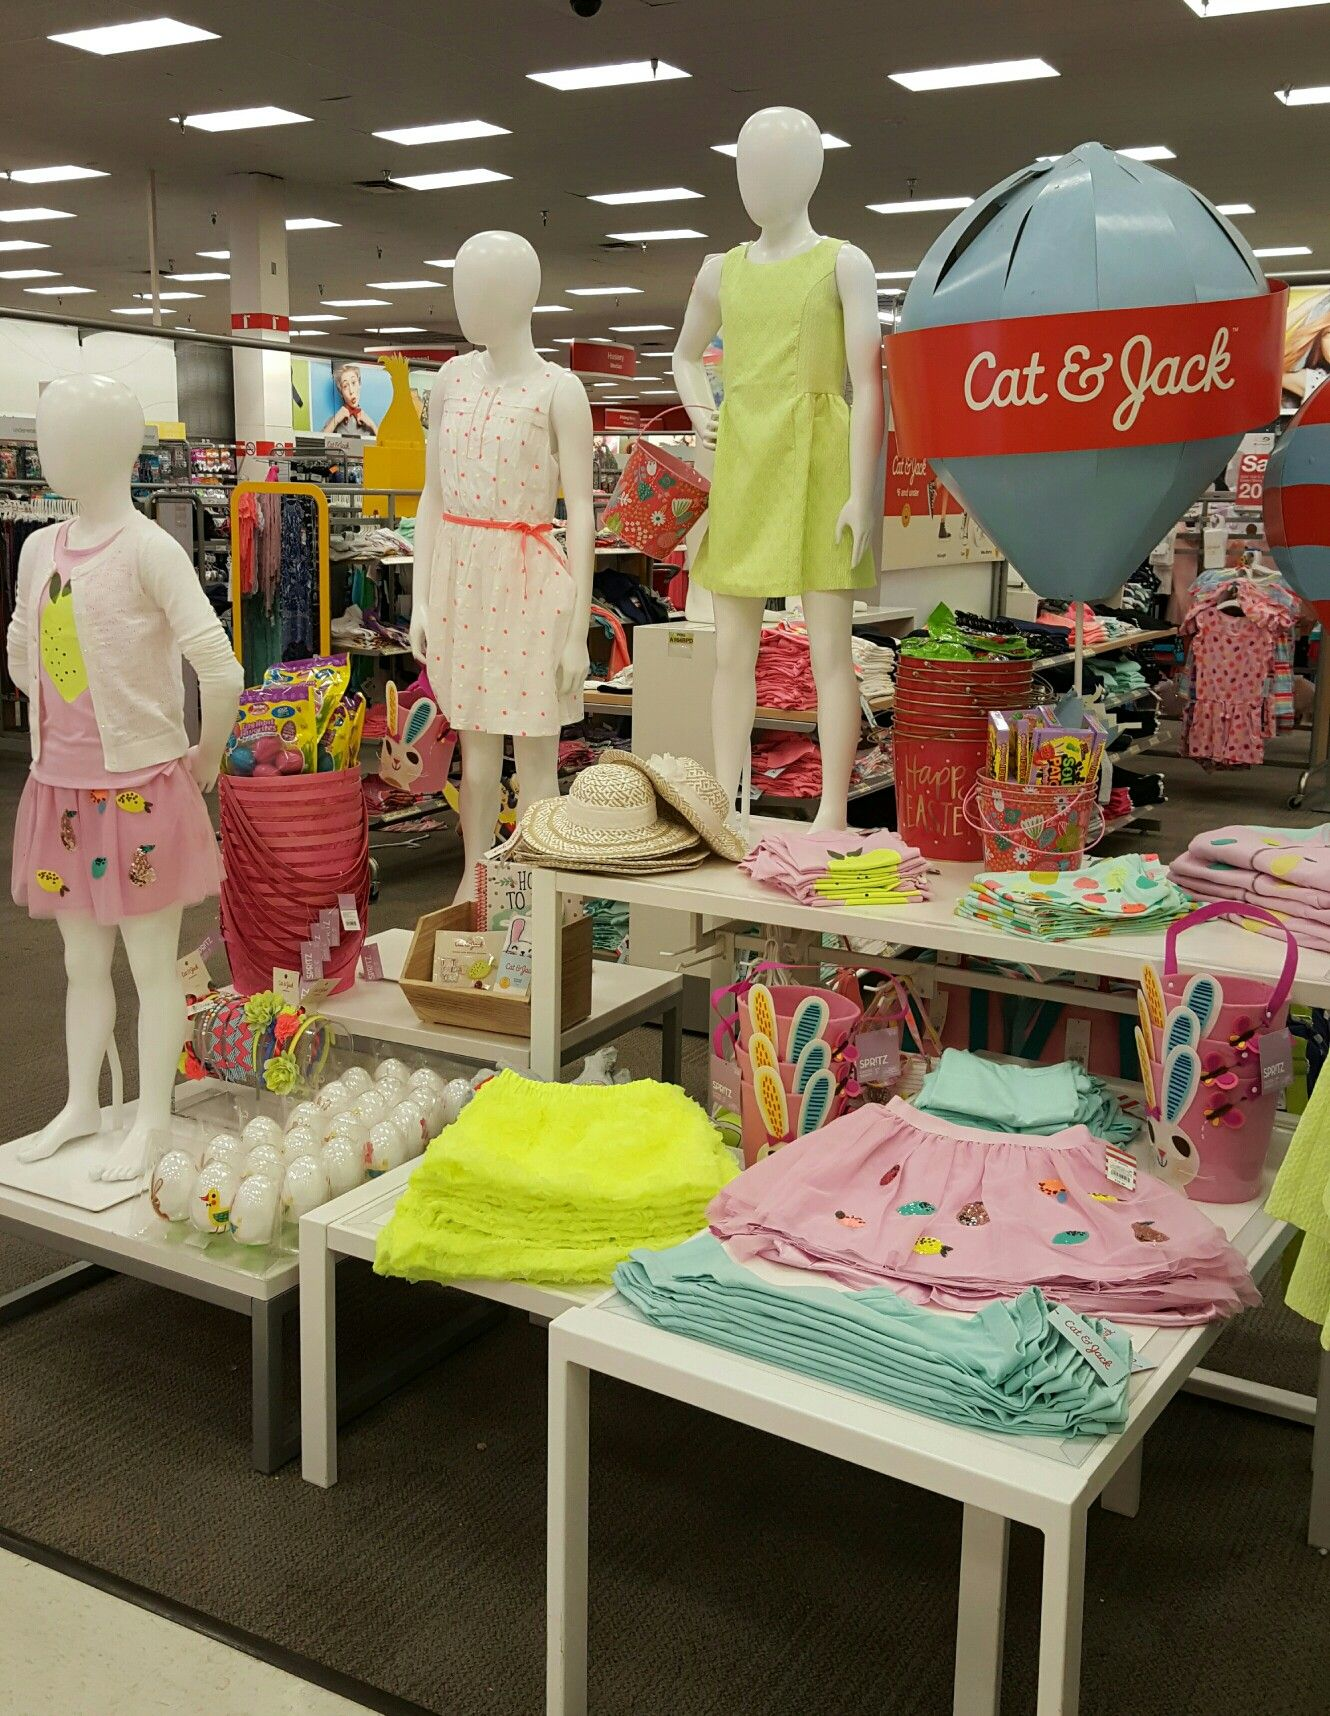 88f111d9db1ee Easter Time #catandjack #Easter #targetstyle #visualmerchandising  #girlsfashion #target #store0203